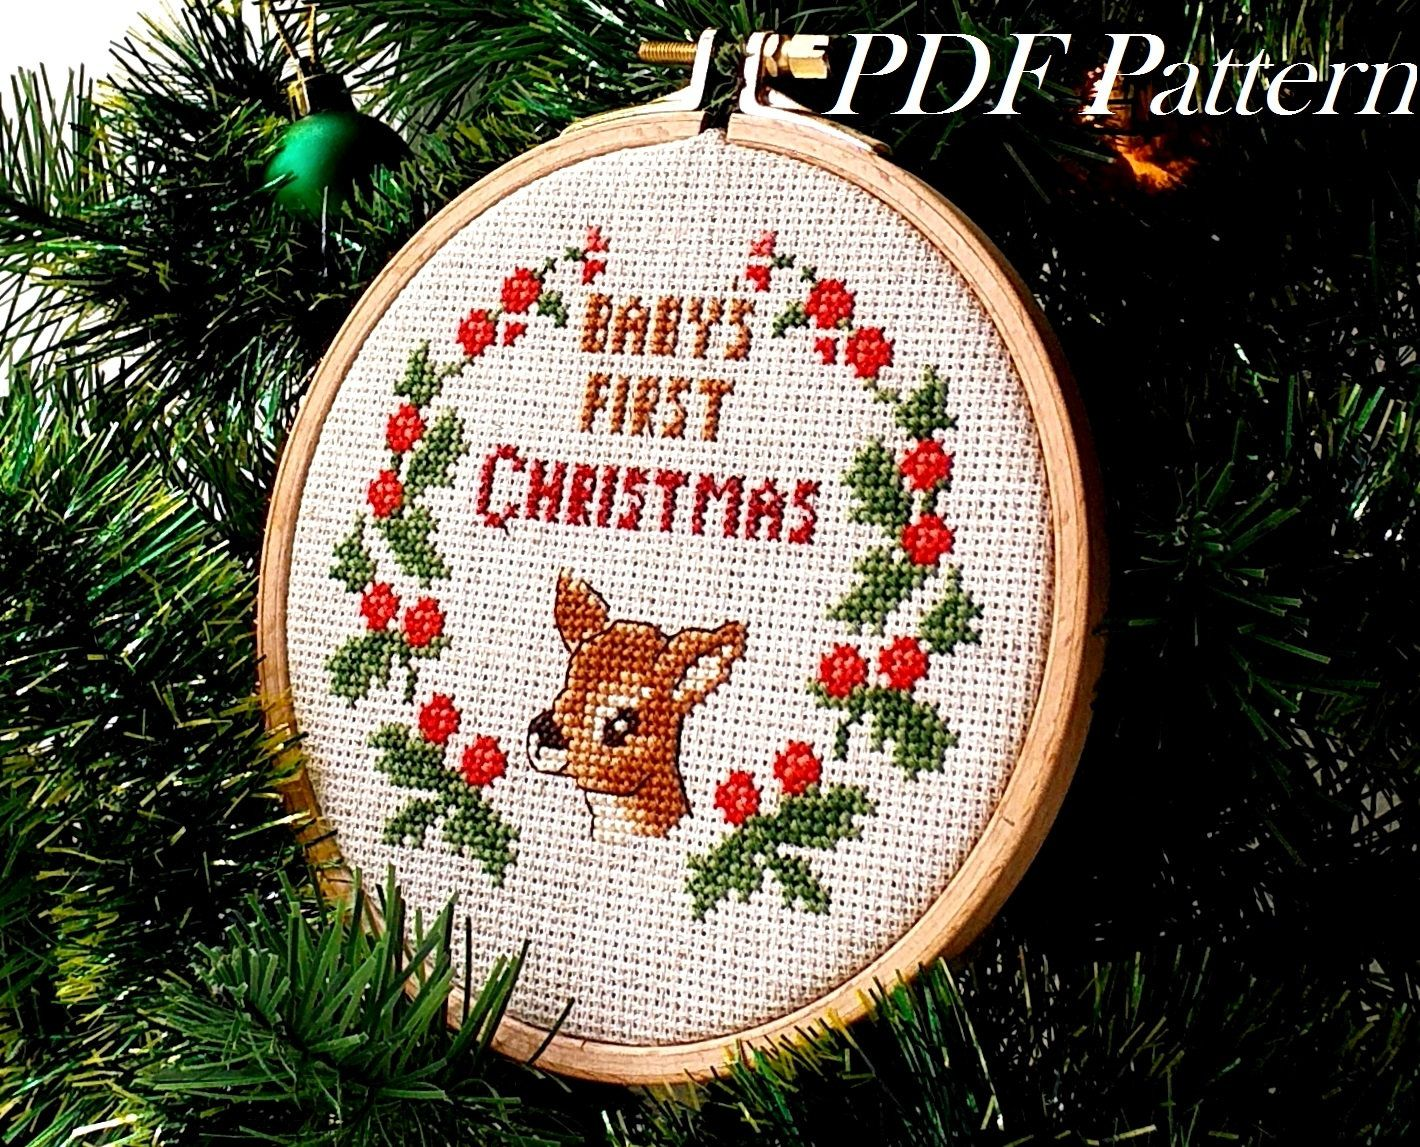 Babys First Christmas Ornament, Funny Cross Stitch Pattern, Beginner Embroidery, Santa Sack Gift, Babys Christmas Stocking, Reindeer PDF